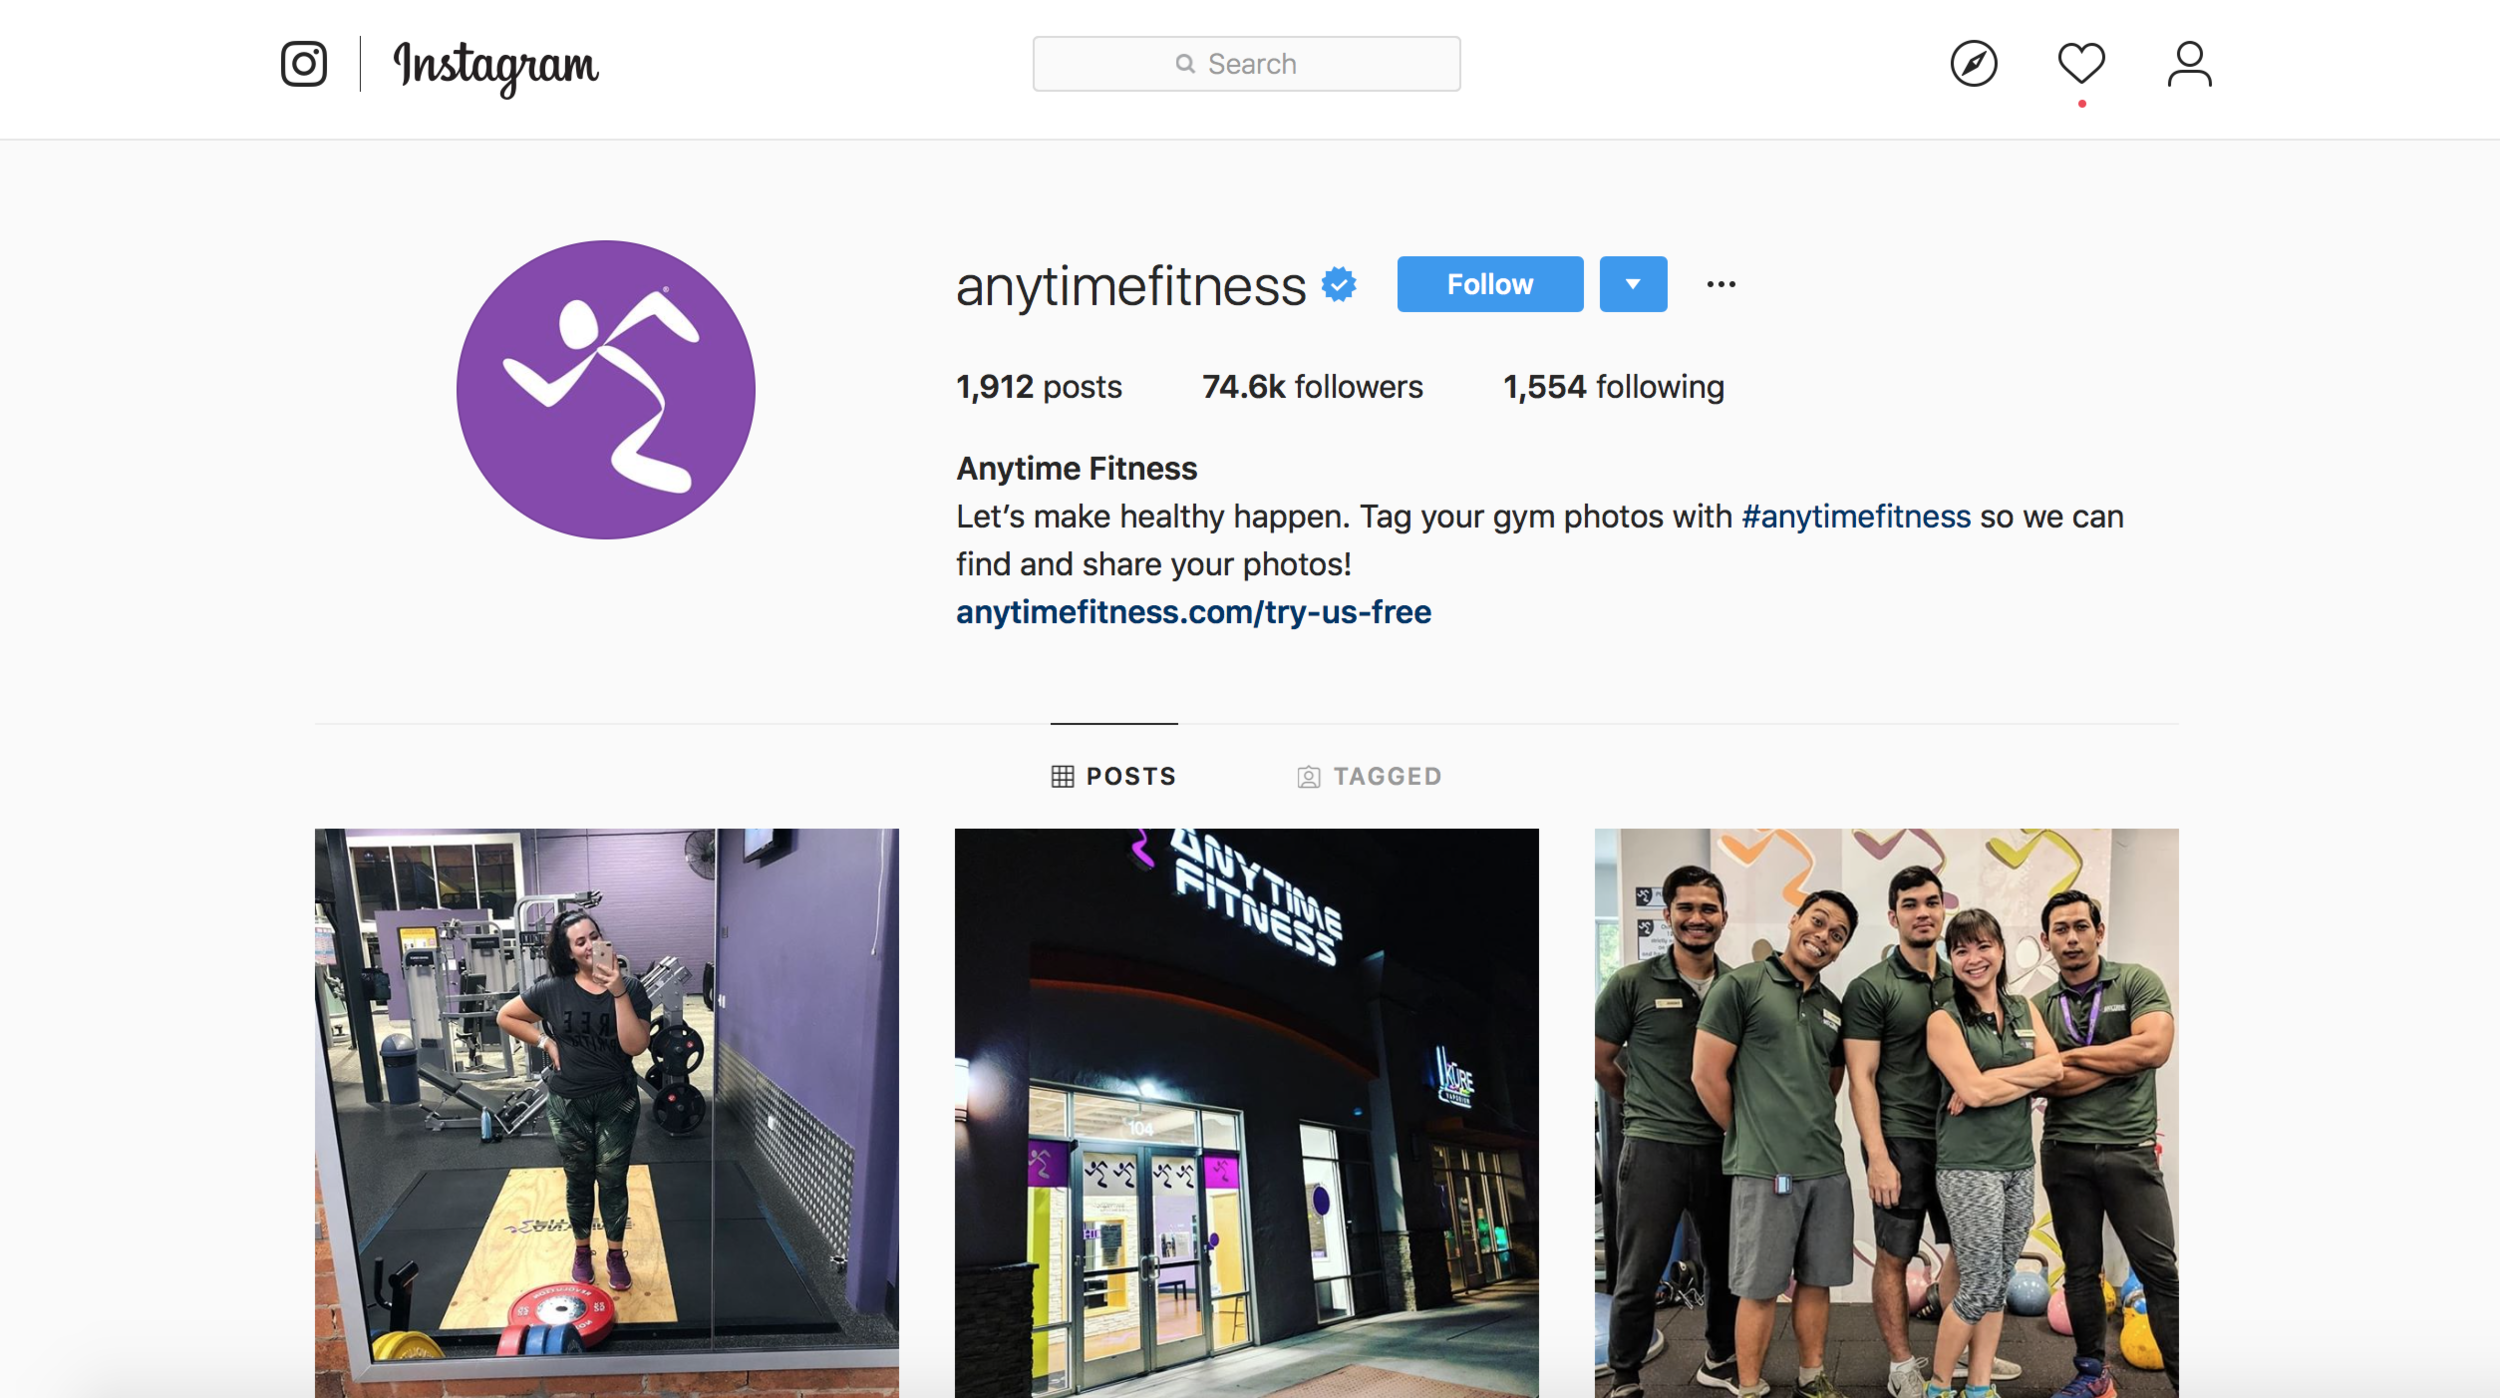 Anytime Fitness Instagram Marketing For Gyms